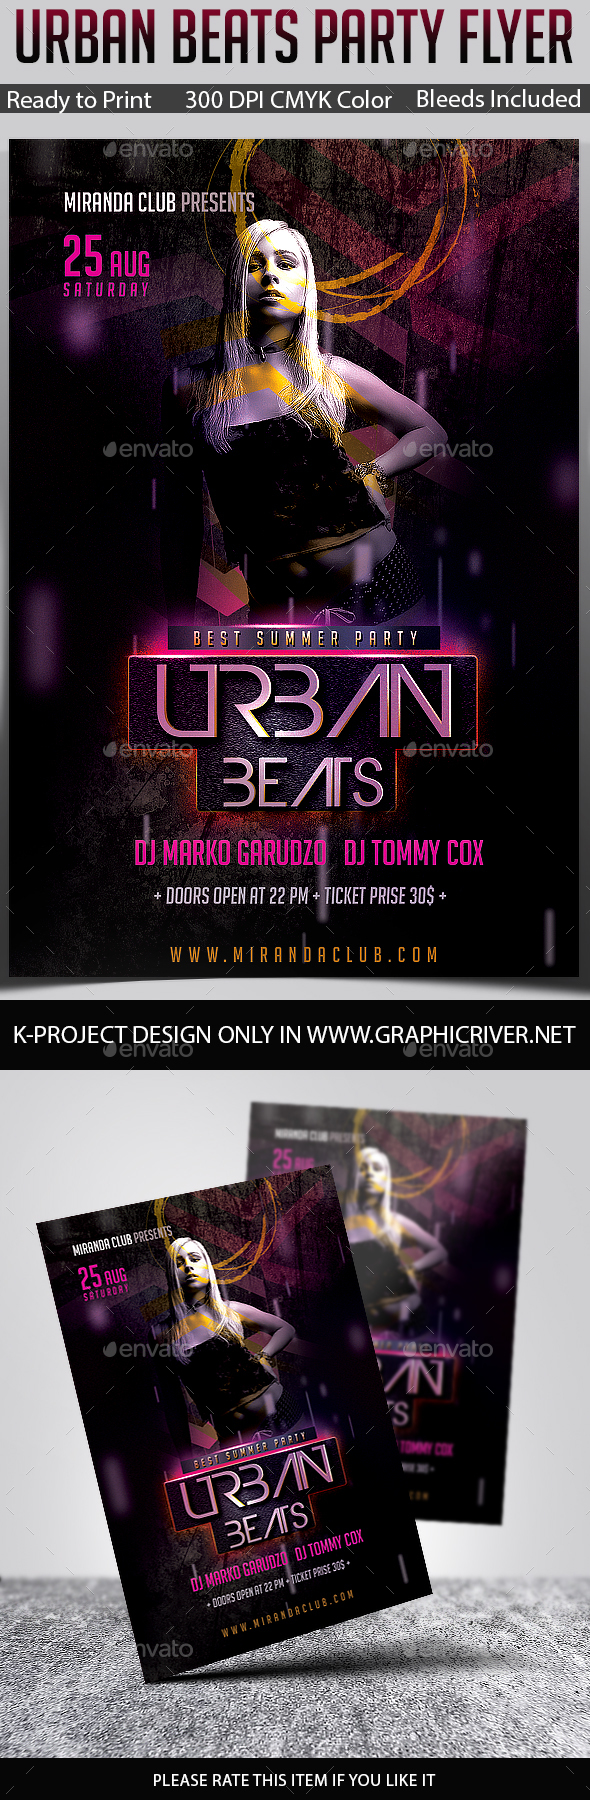 Urban Beats Party Flyer - Clubs & Parties Events